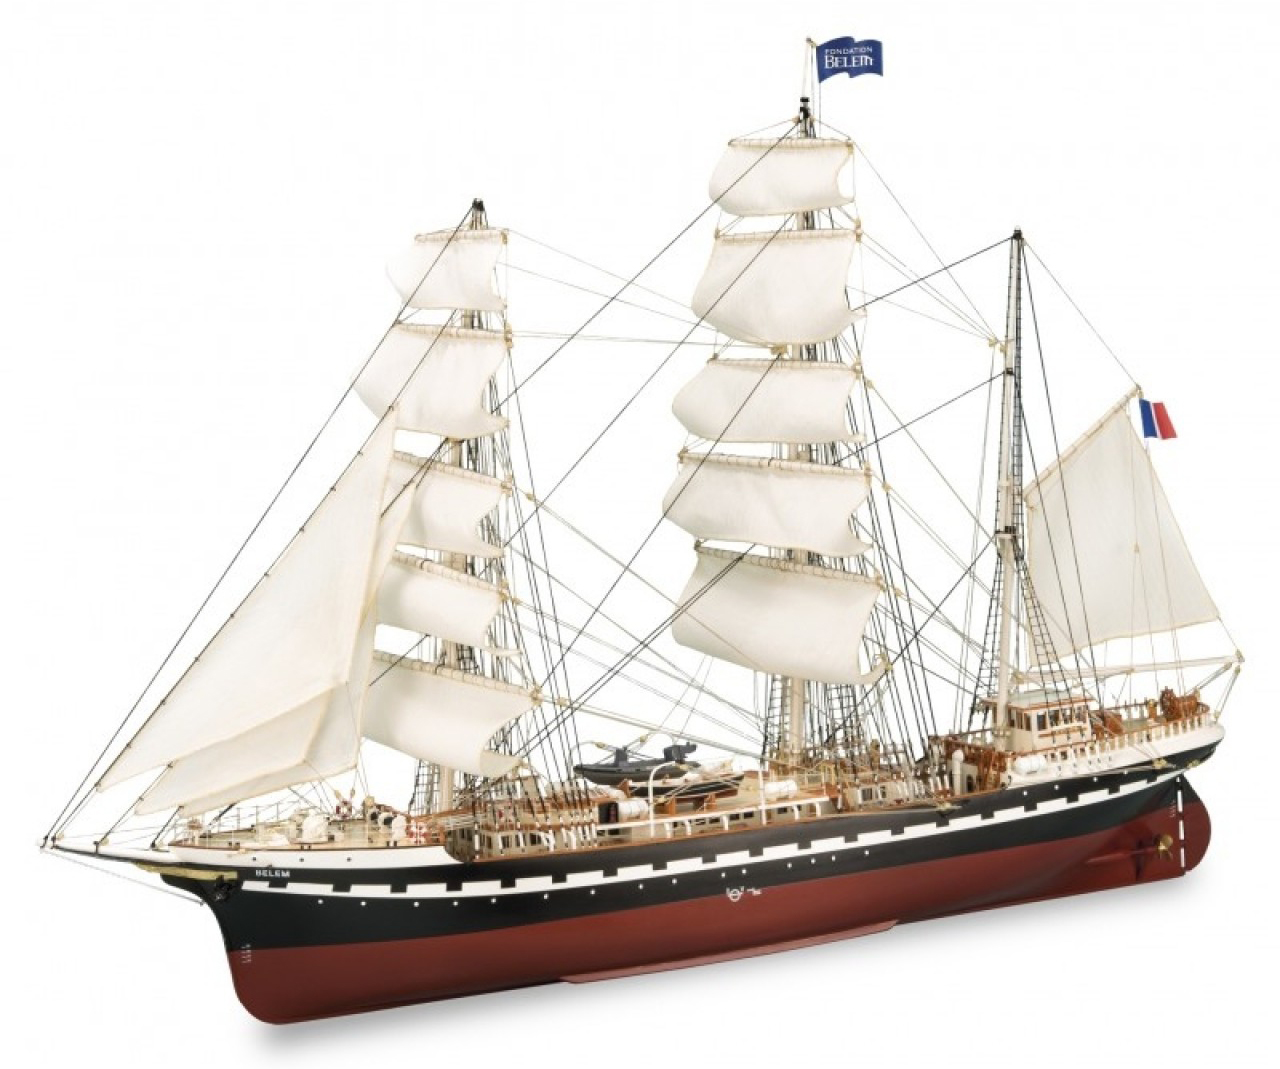 Image of the DeAgostini ModelSpace 1:75 scale Belem ship model, as part of a blog about the Belem ship and its history.